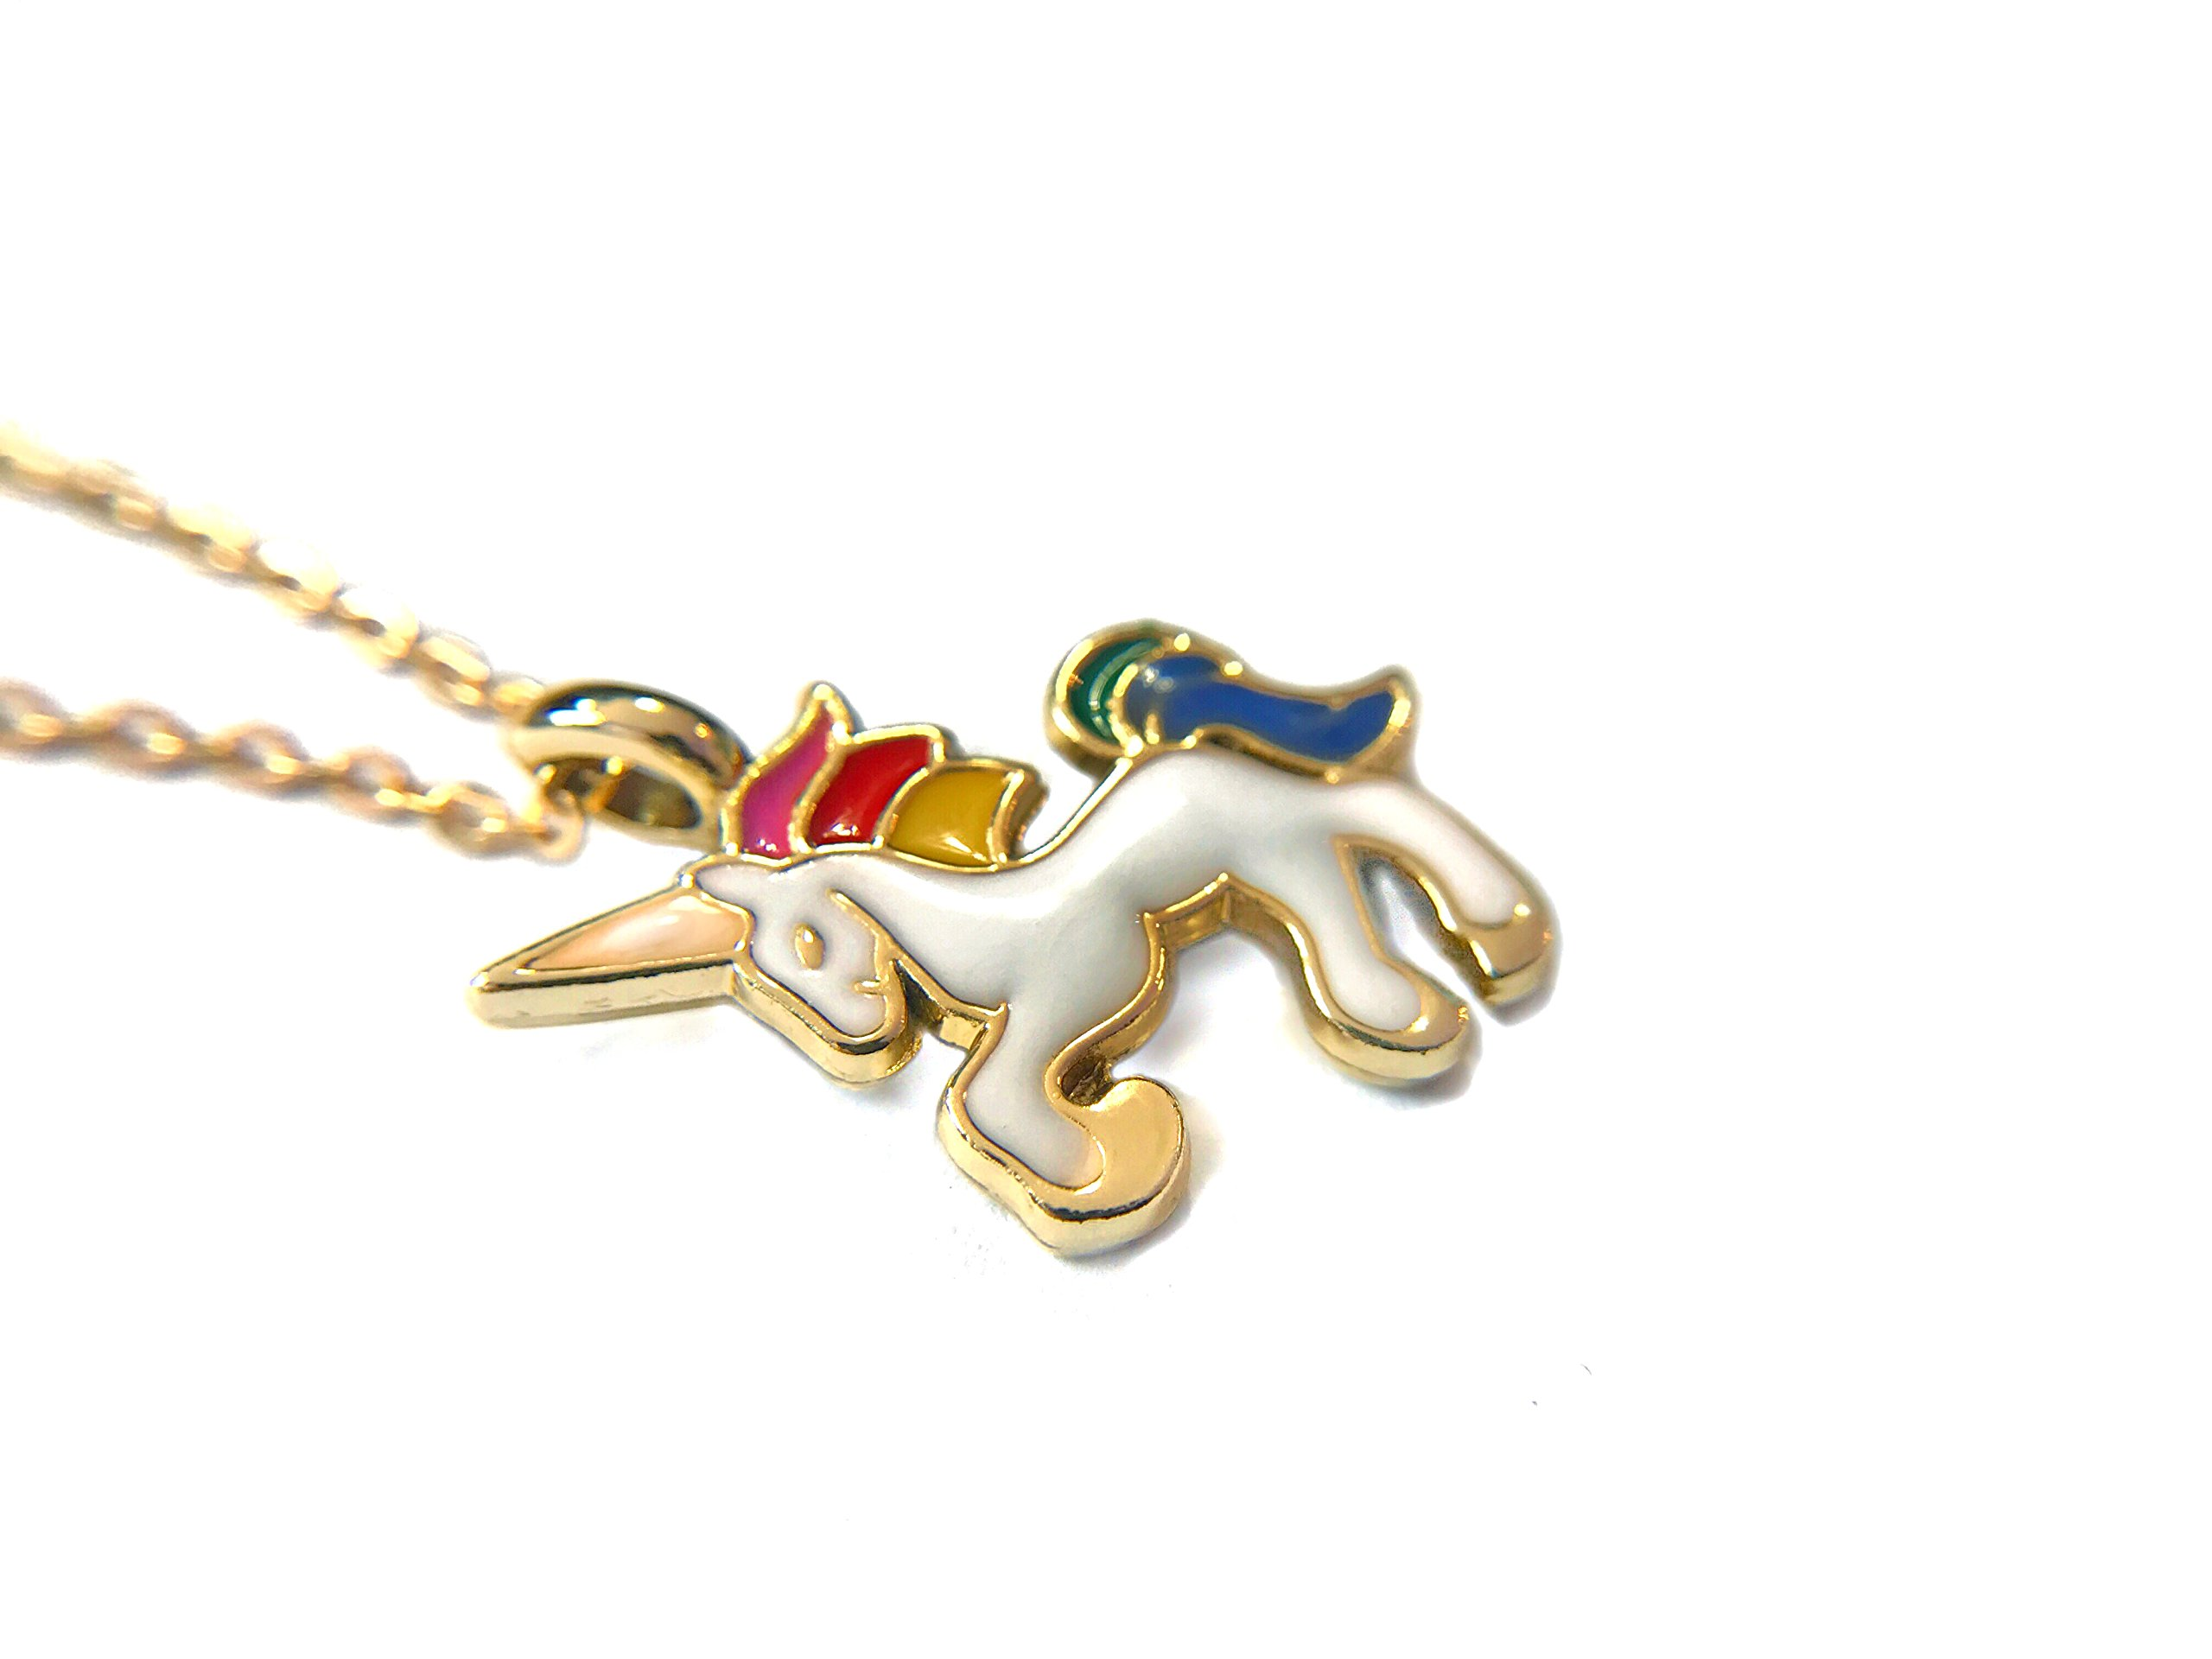 Altitude Boutique Unicorn Necklace Magical Pendant Gift for Girls or for Women Gold Silver Colorful Enamel 5